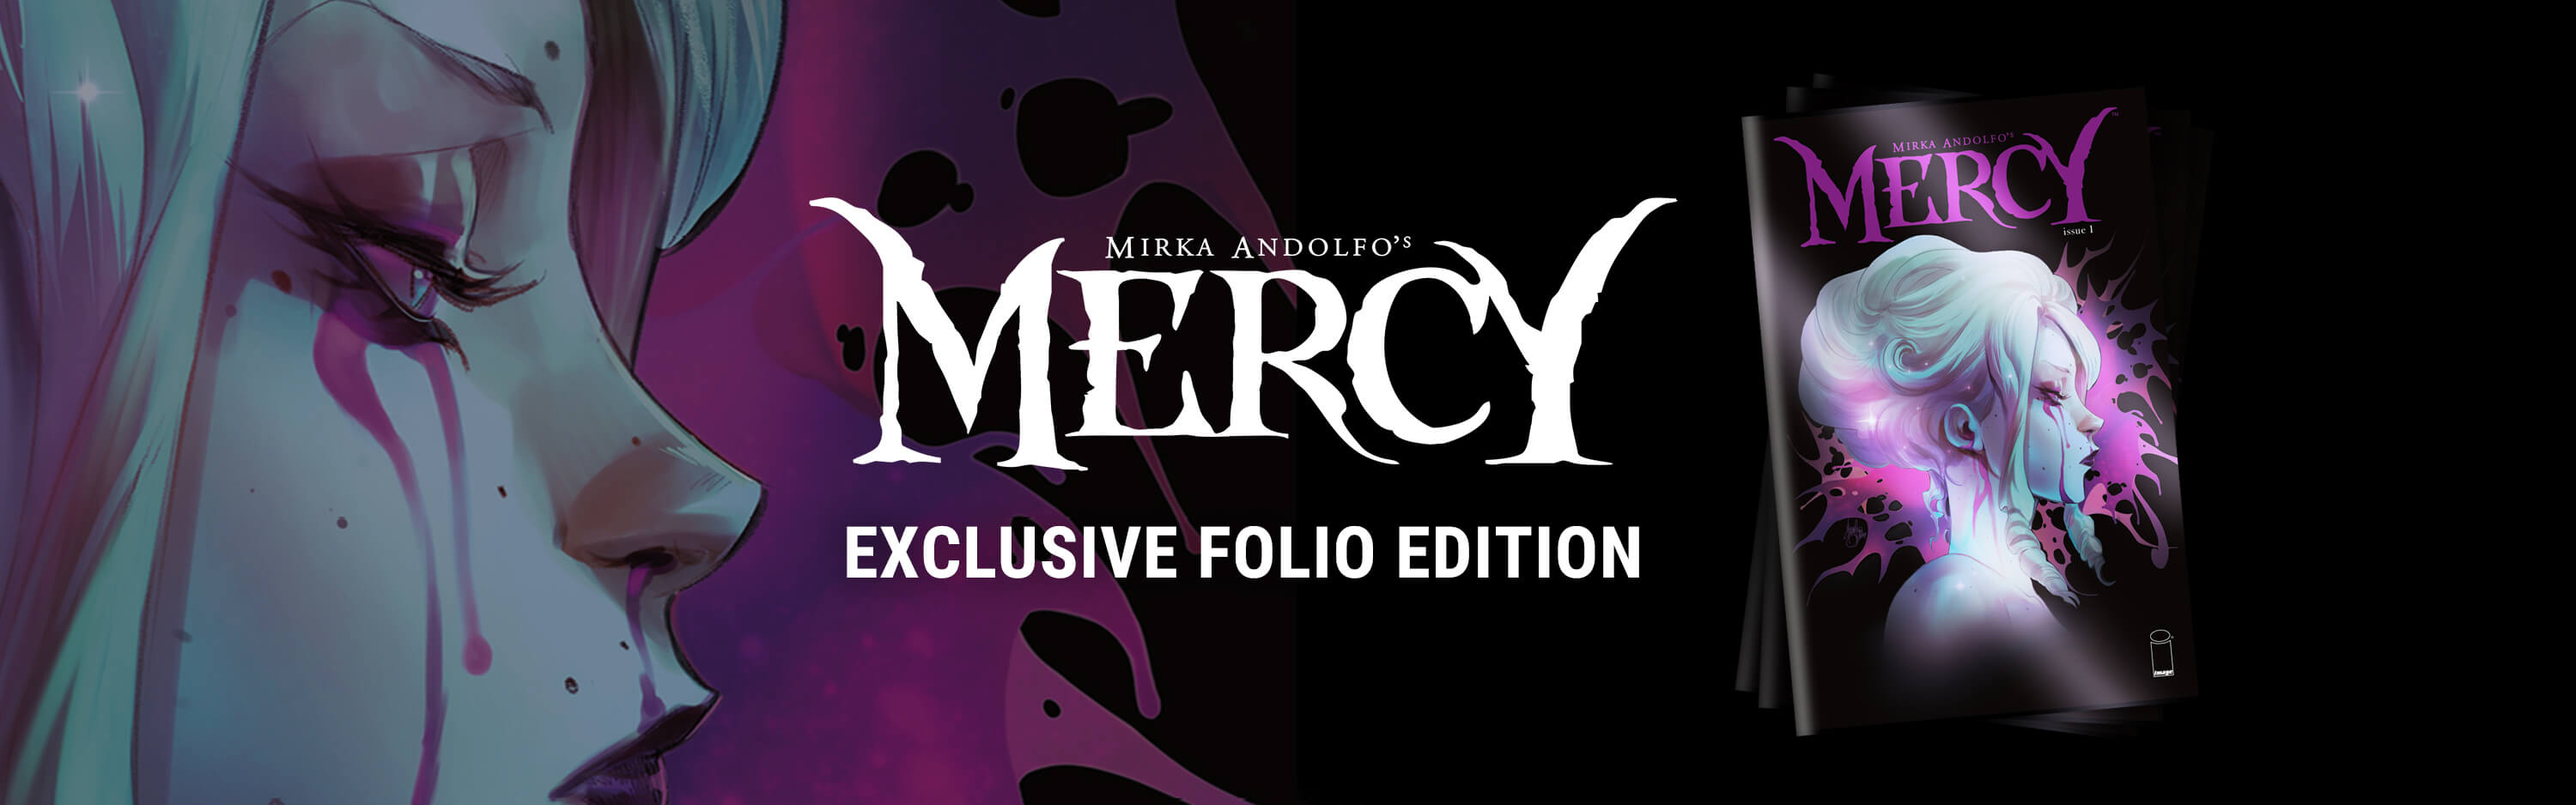 MERCY Exclusive folio edition